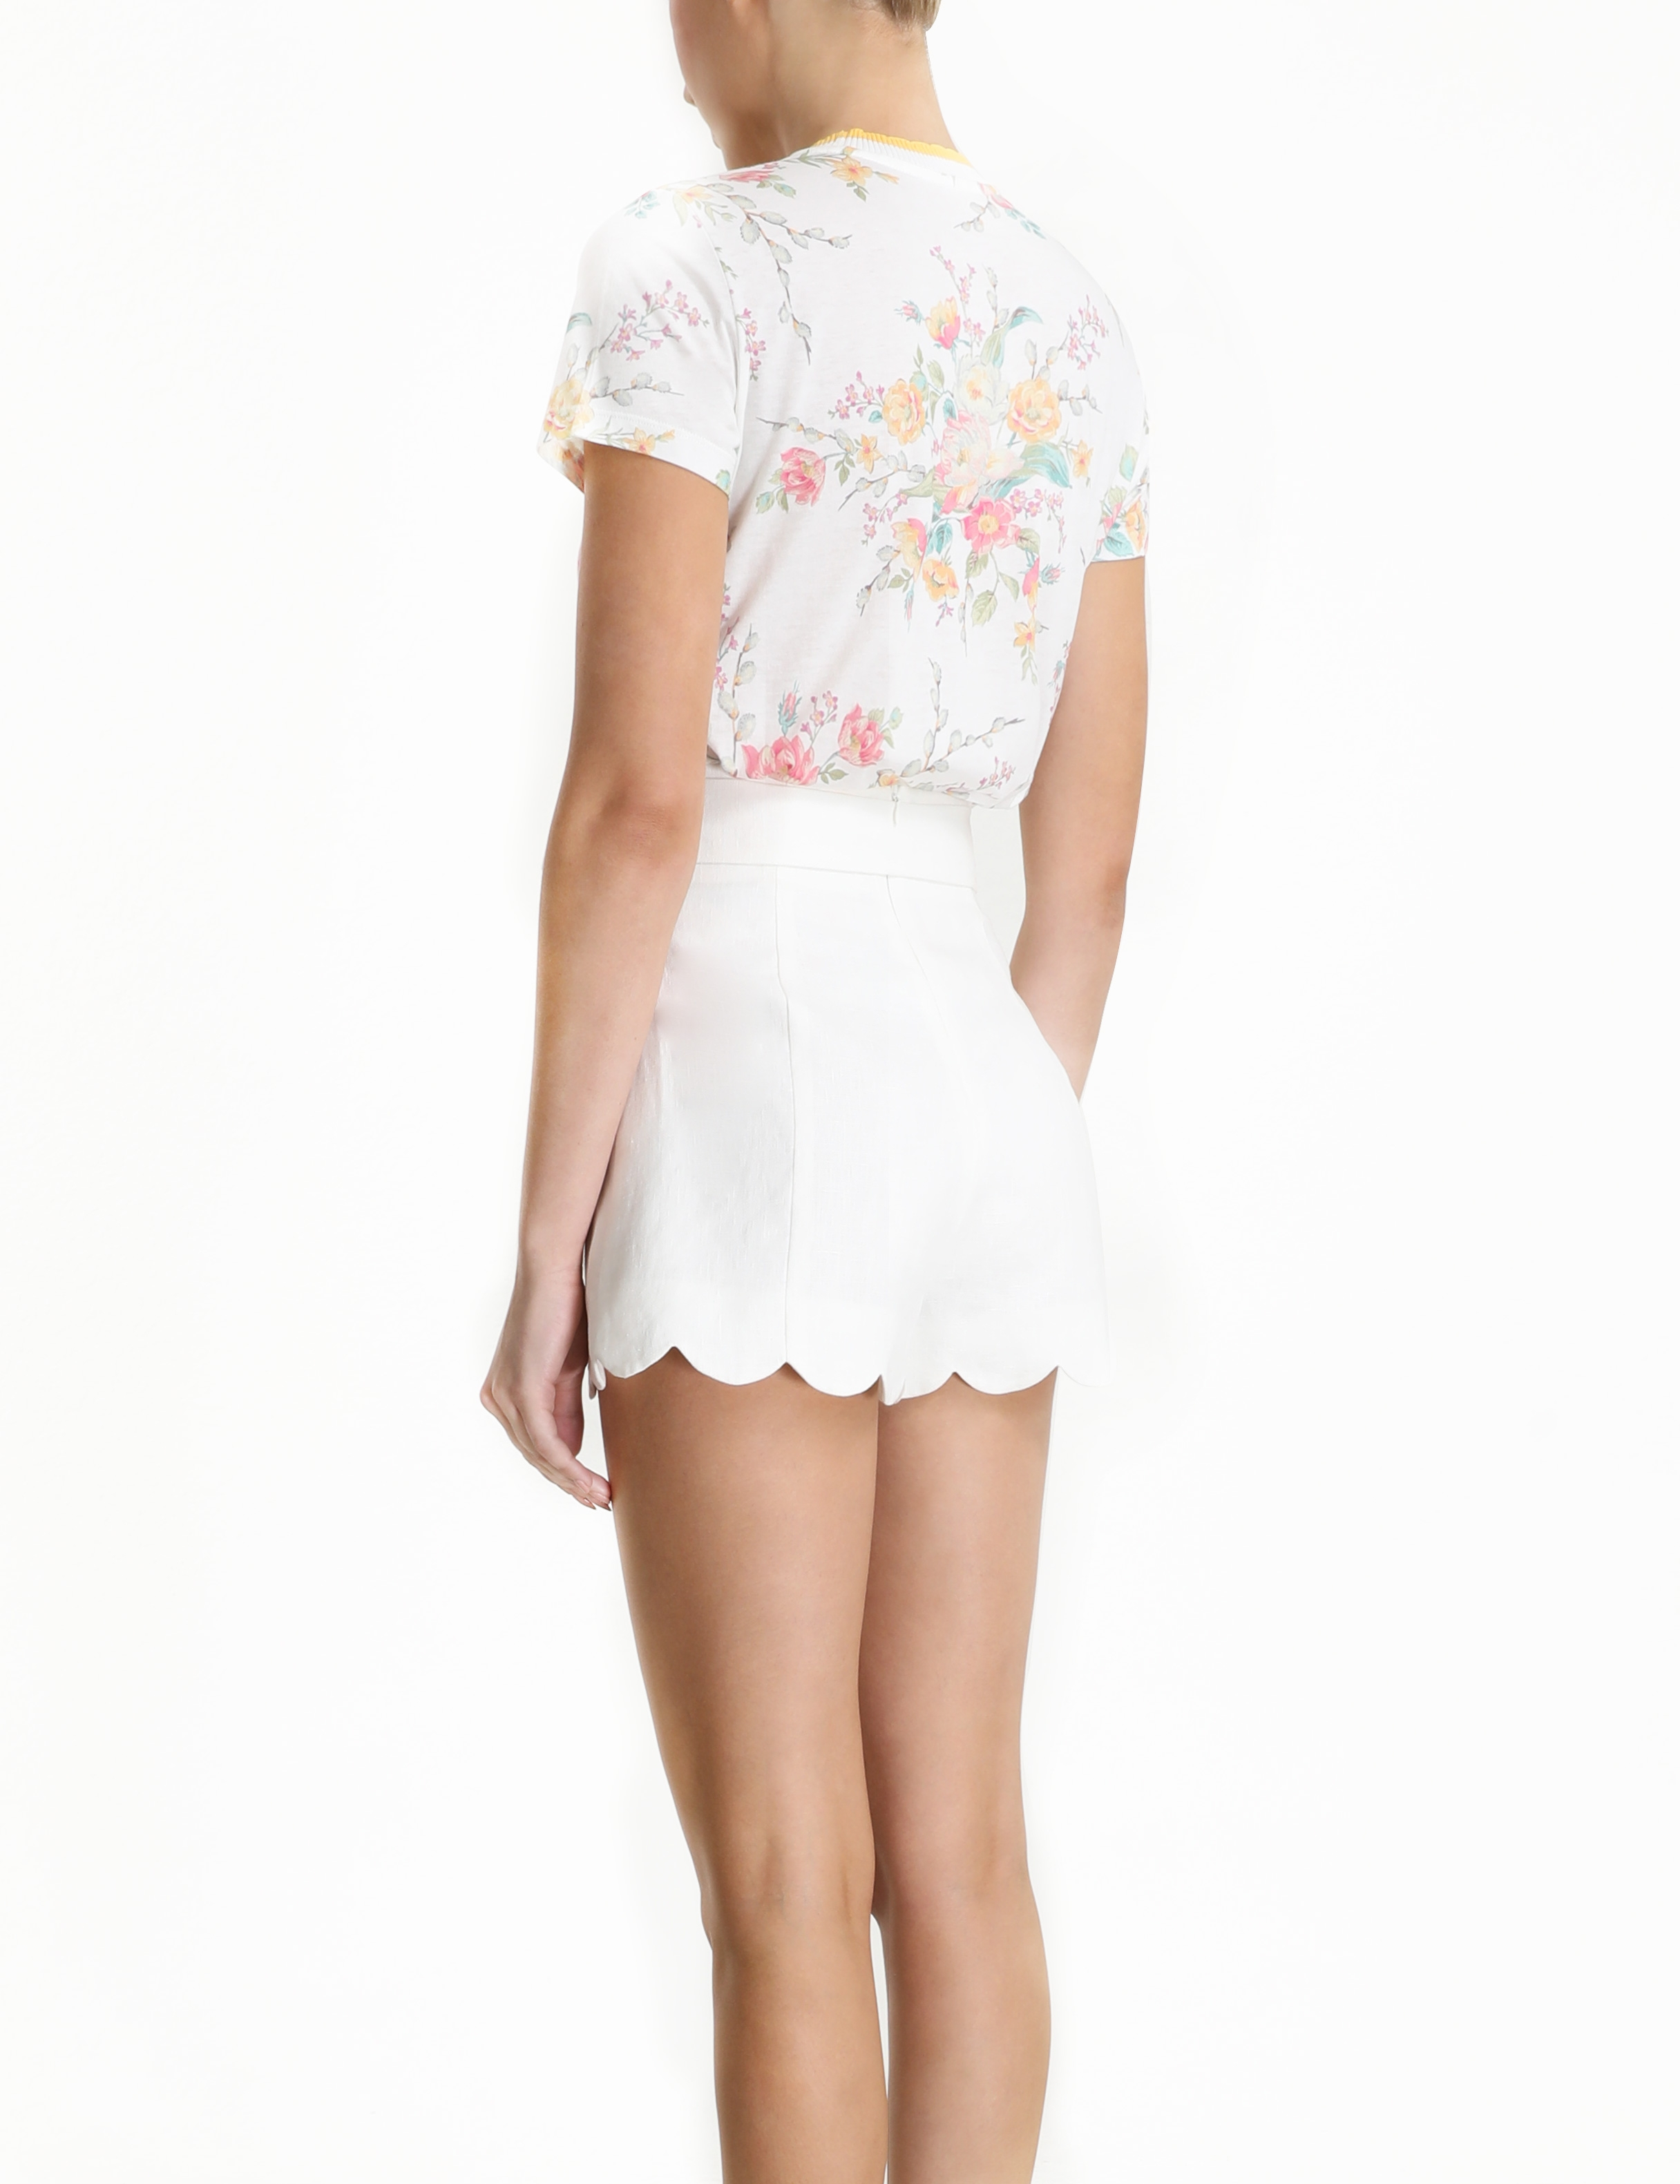 Zinnia Floral Print Fitted Tee